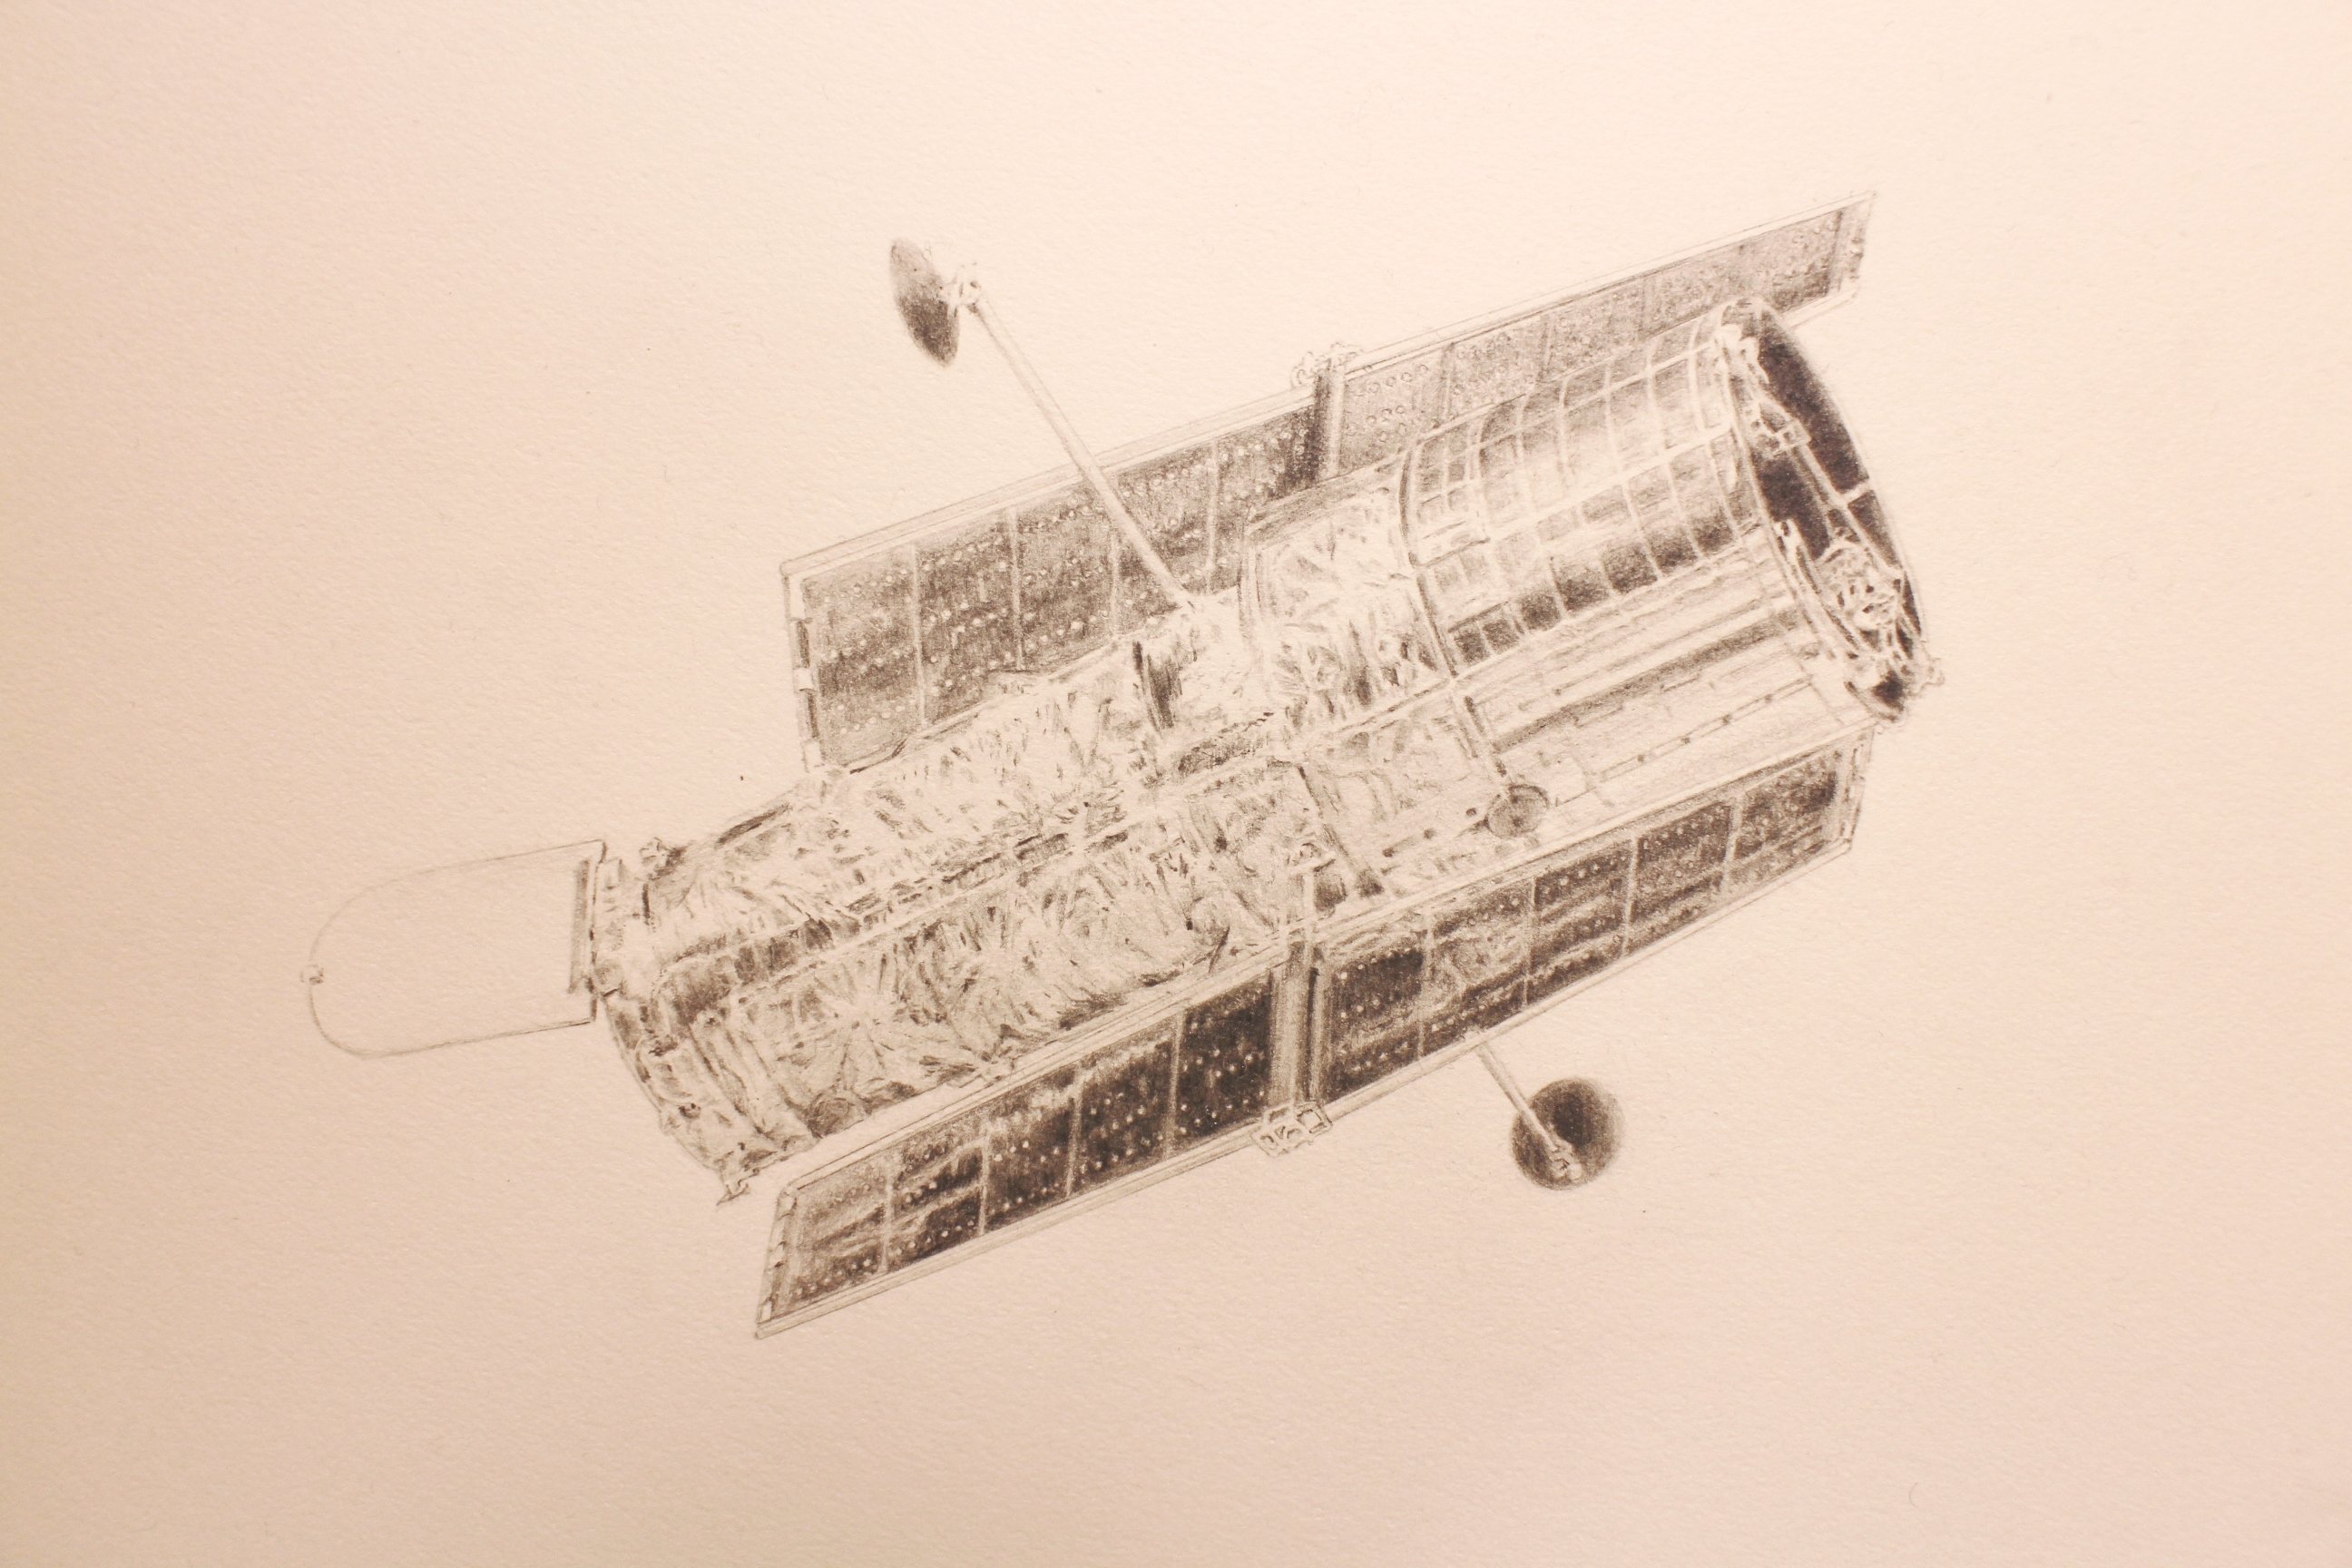 Hubble Telescope (a part of work)